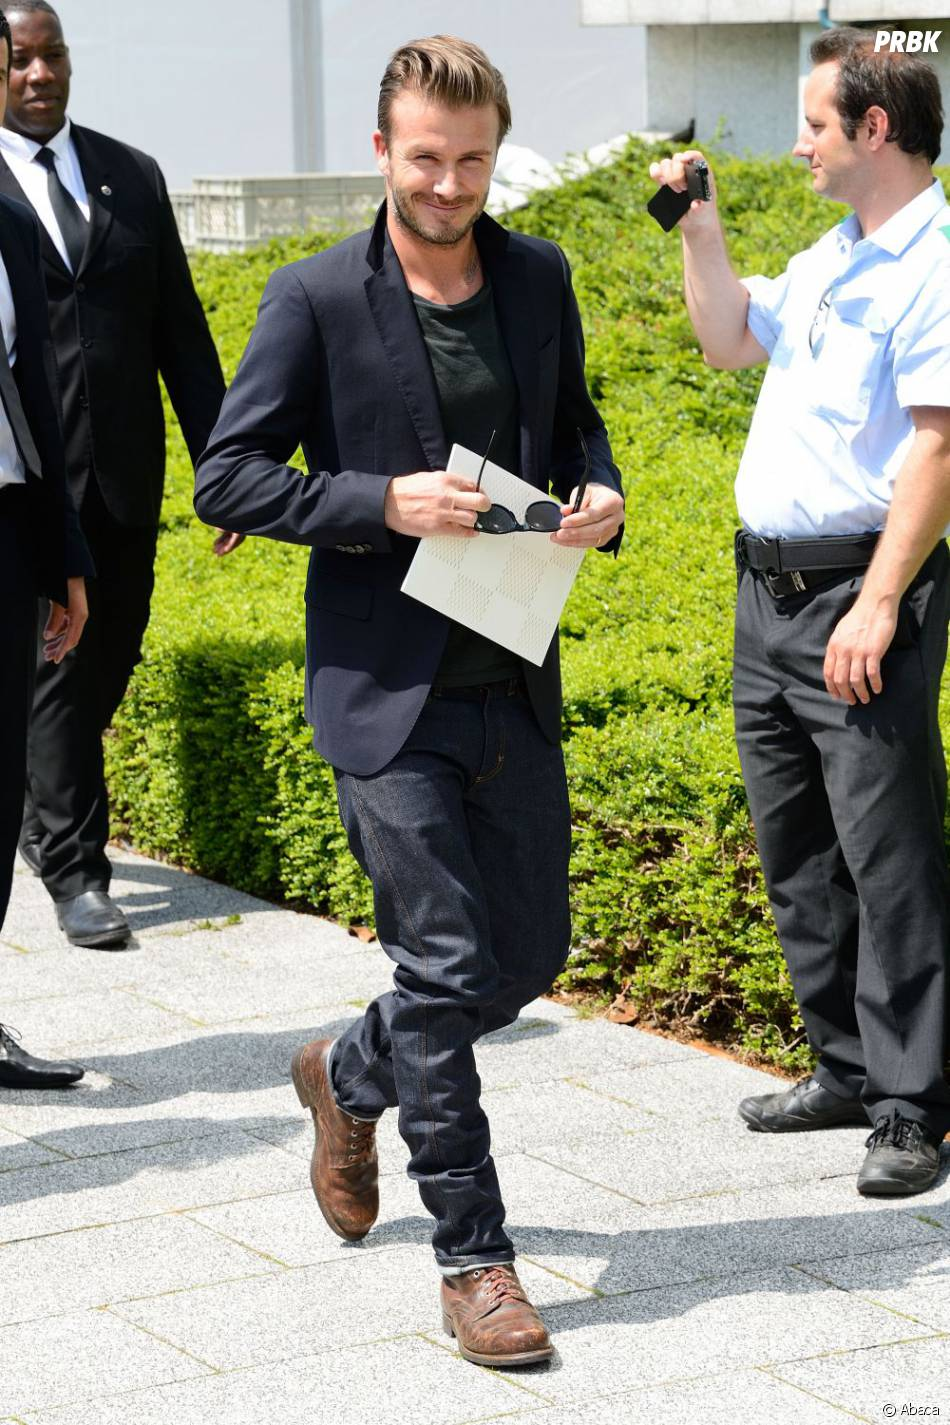 David Beckham Fashion 2013 Images Galleries With A Bite